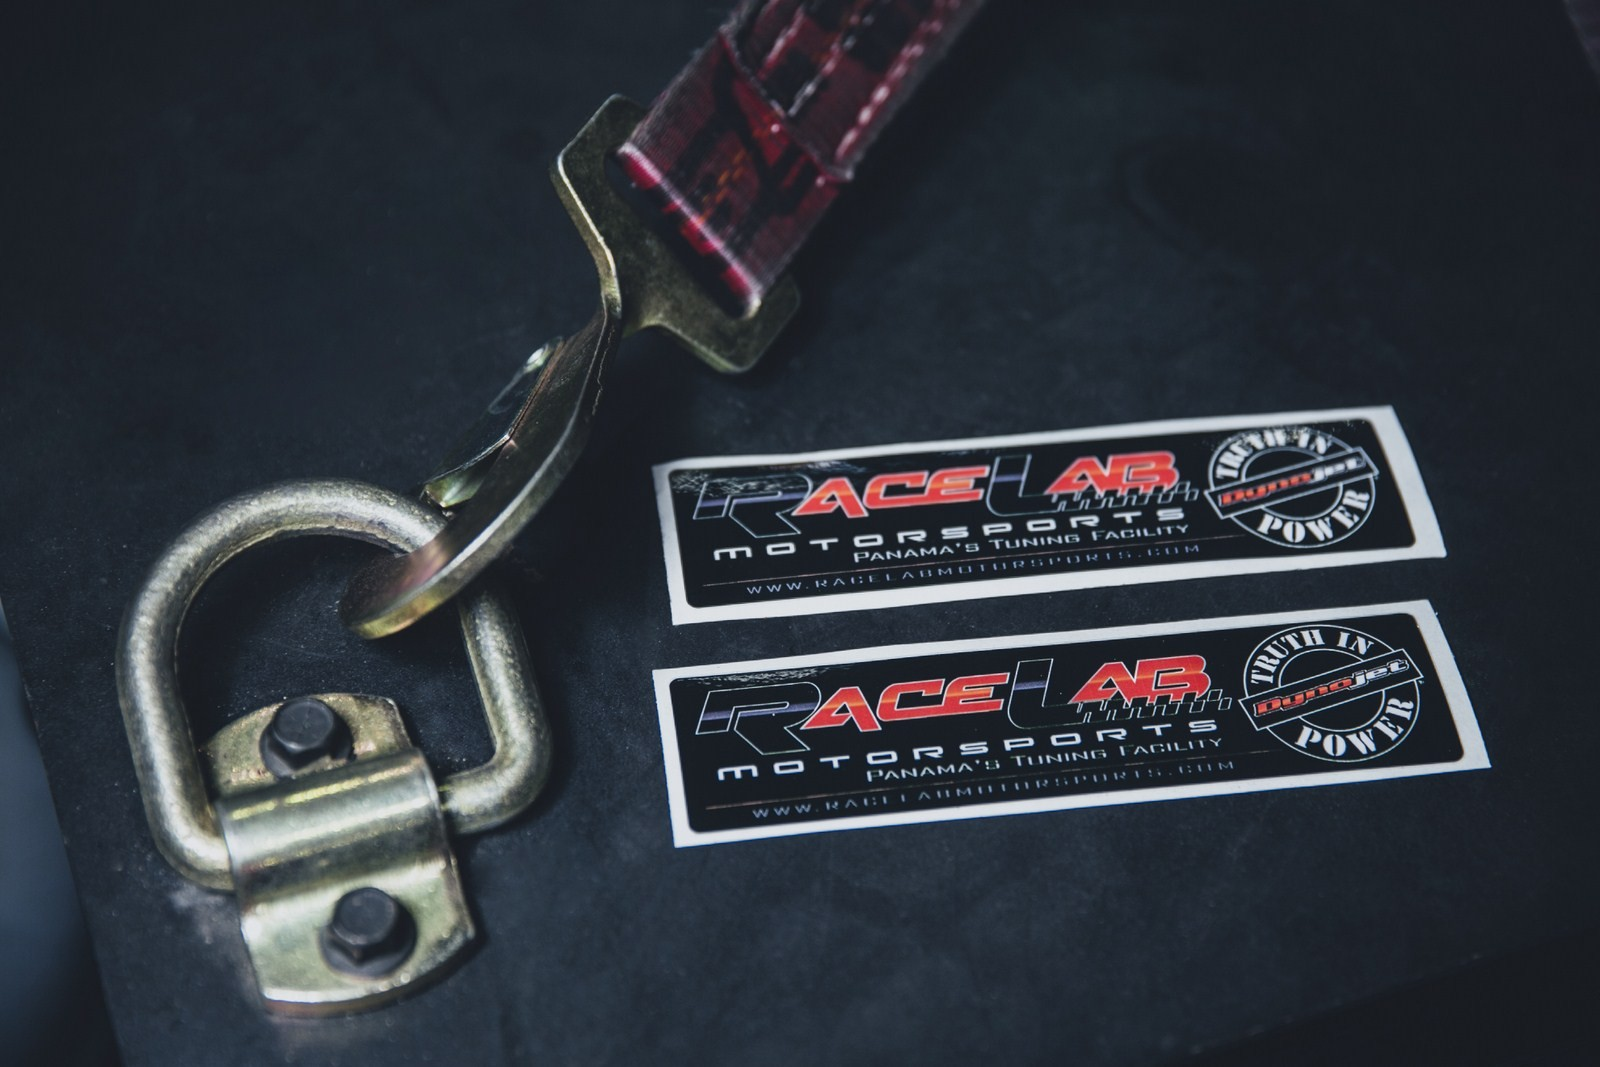 RACE LAB DECAL DYNO JET 6.8 x1.75 COST- $5.00